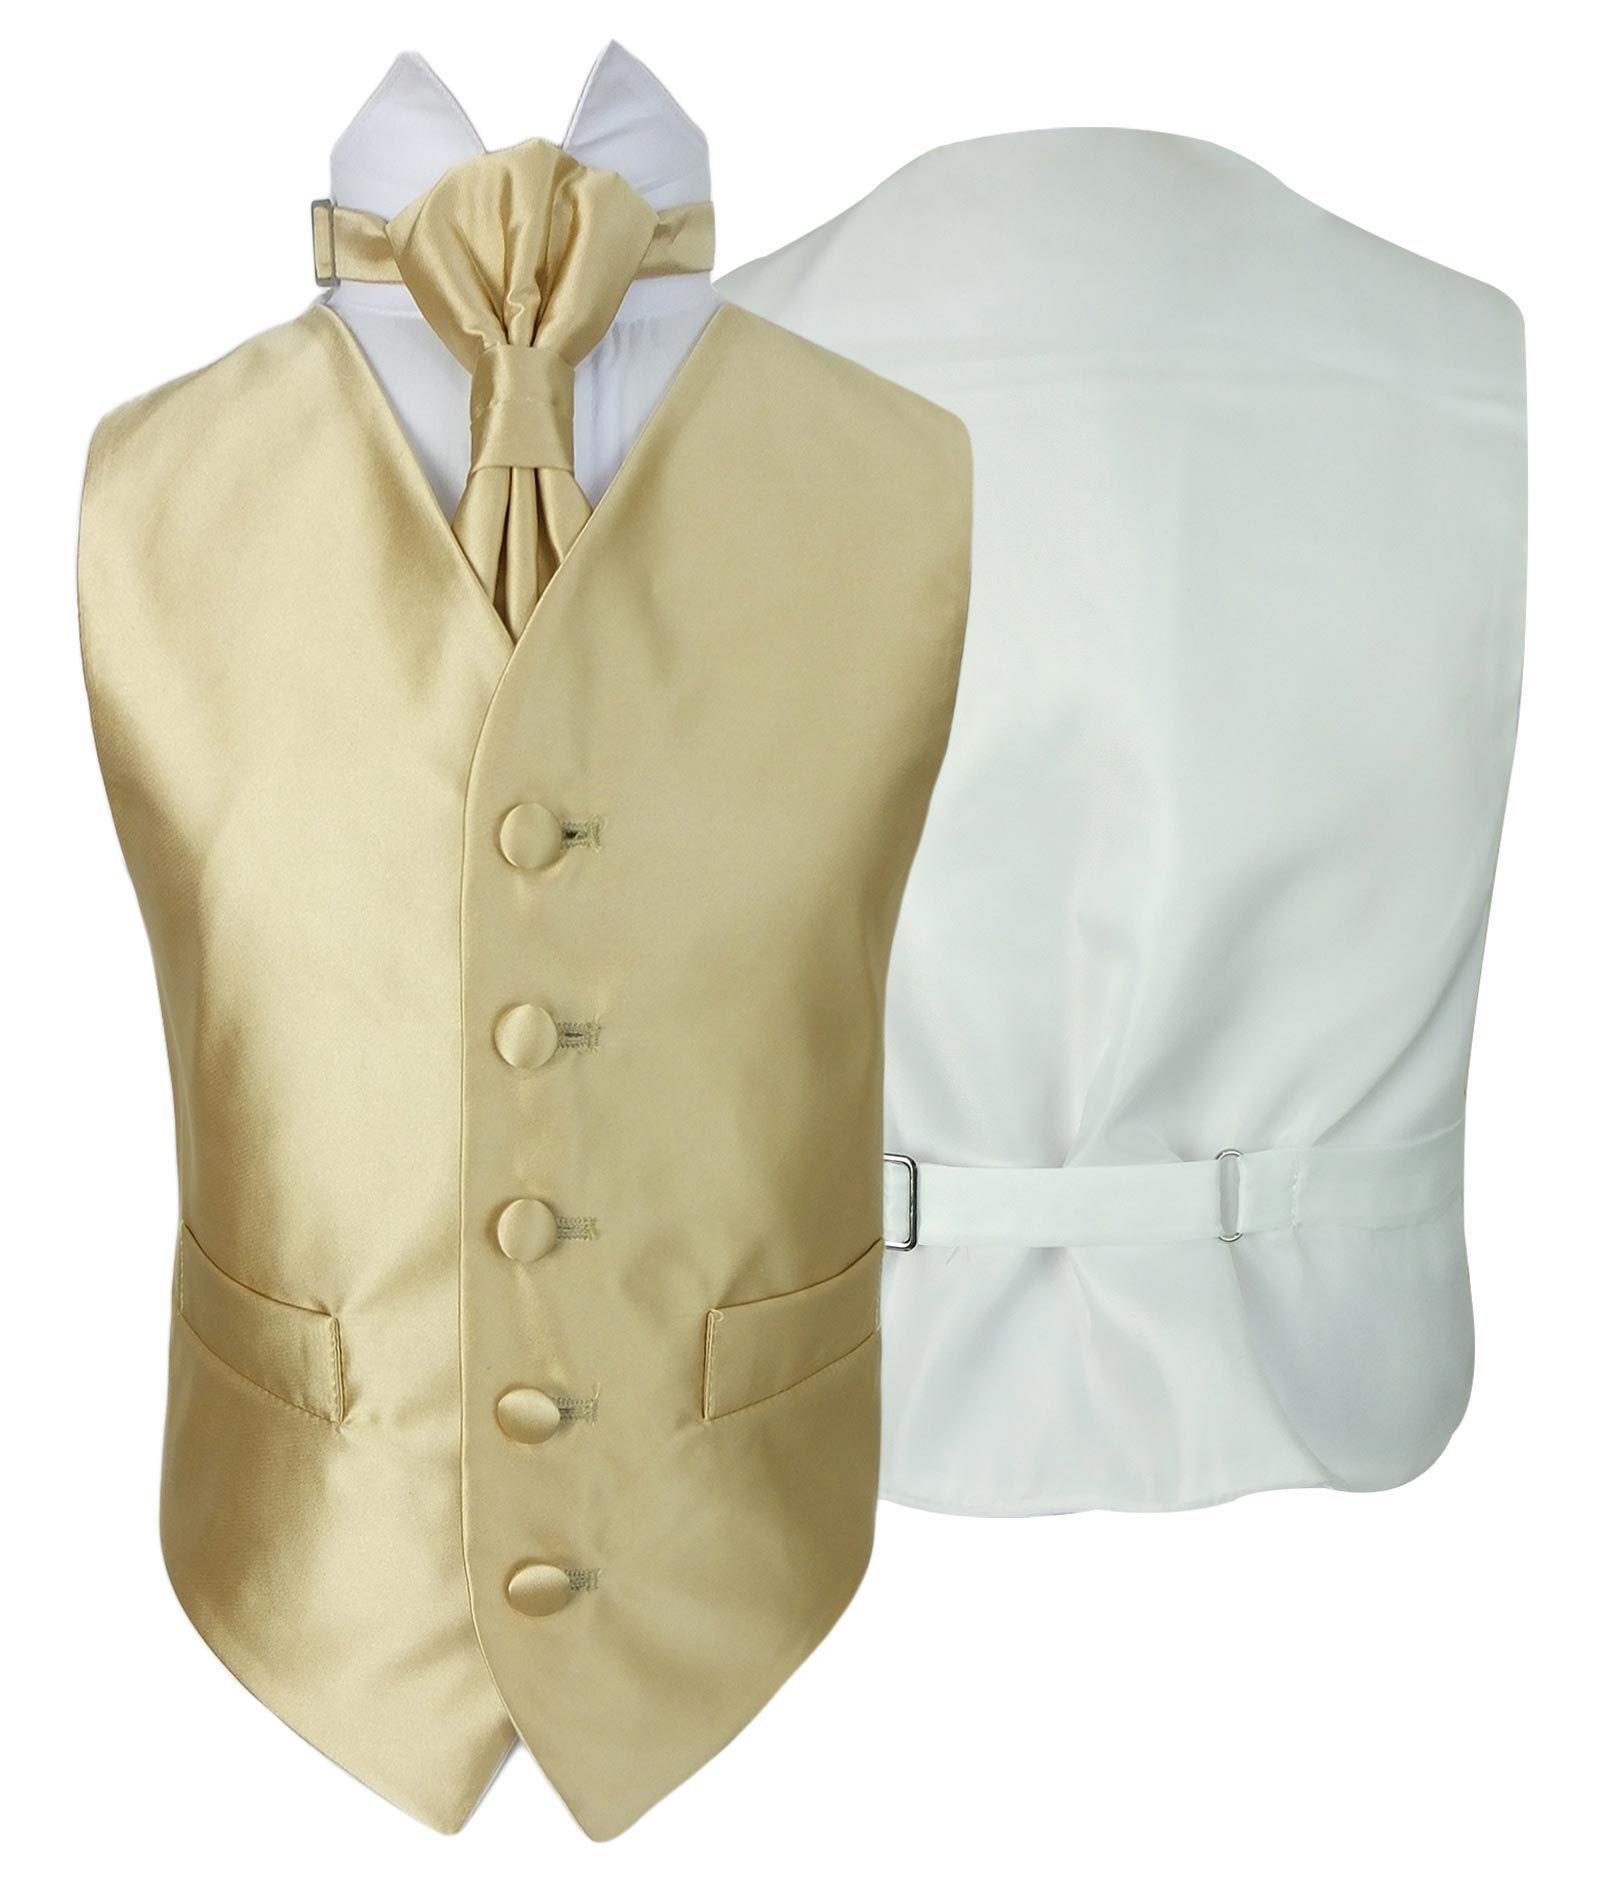 3027ddc9e382 Made to impress, these gorgeous waistcoats are well-tailored and will add  extra class